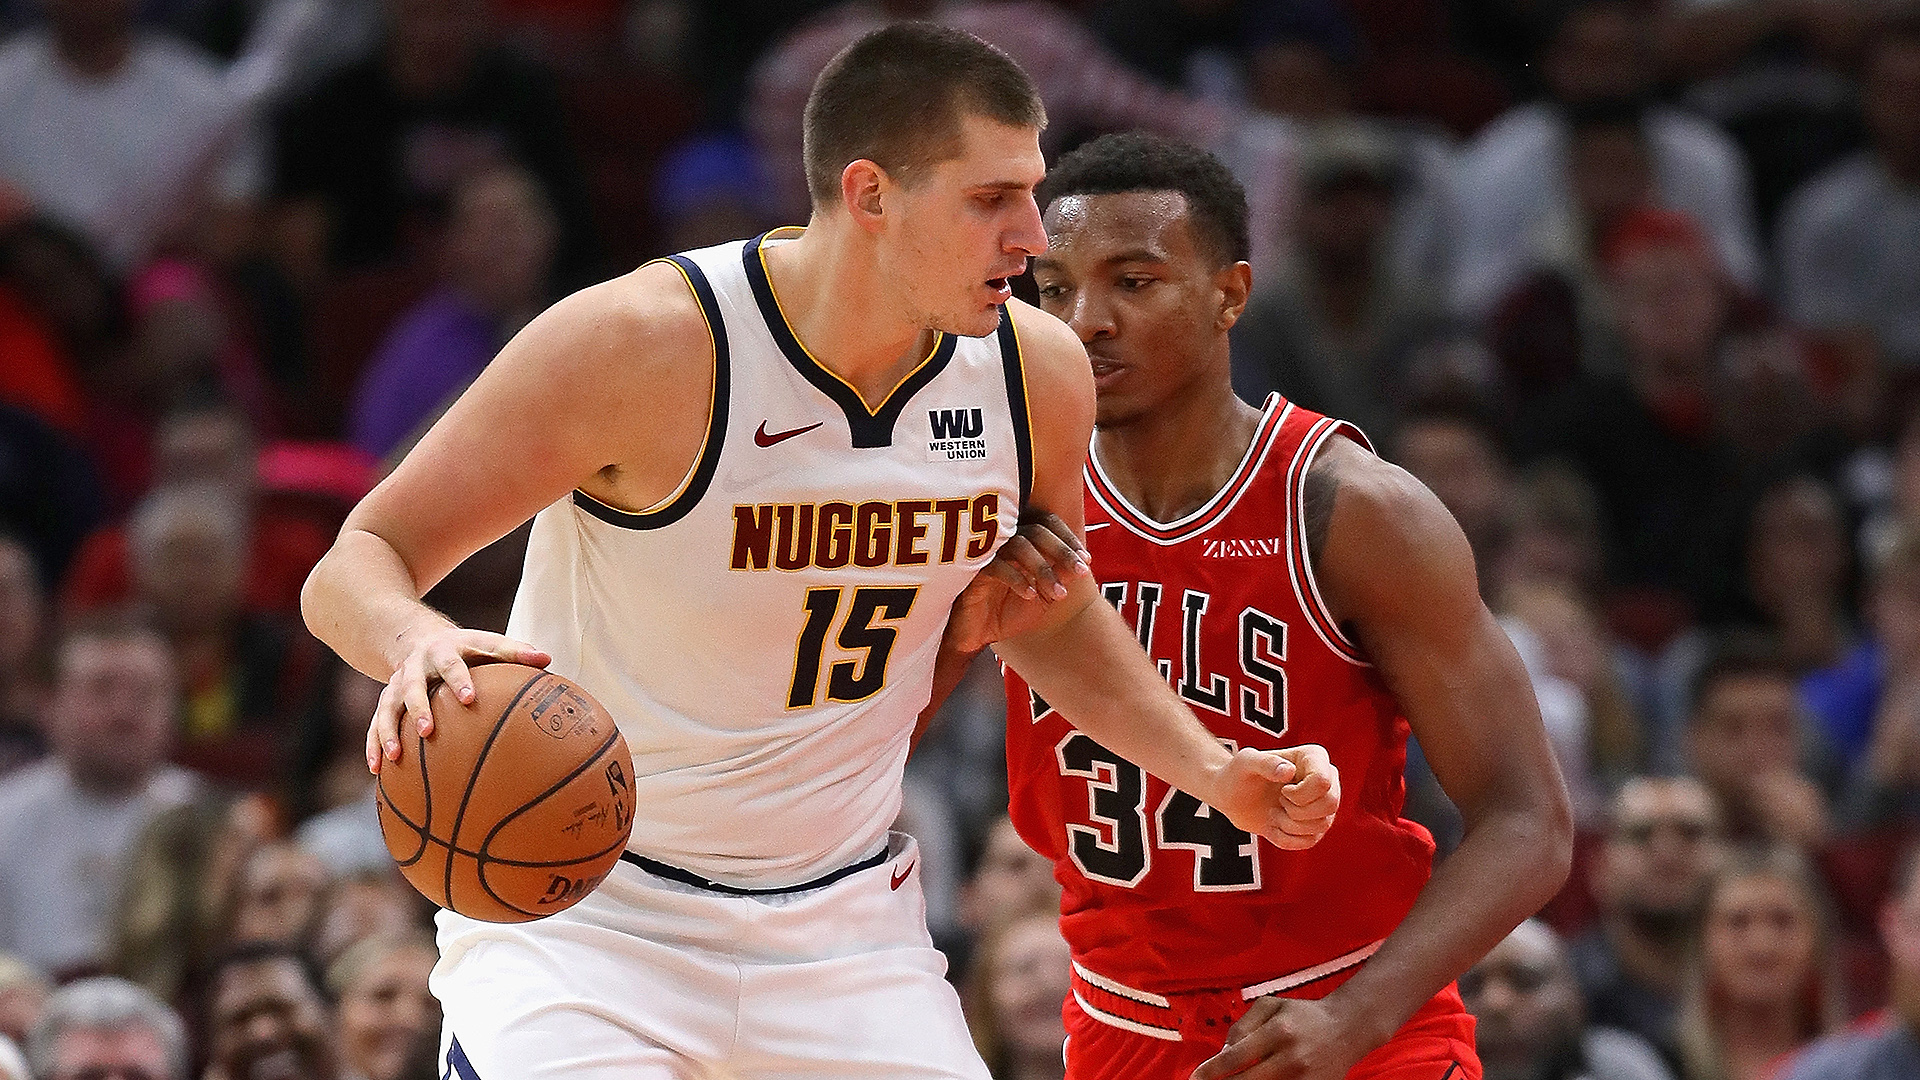 Nuggets' Nikola Jokic fined $25,000 for homophobic remark